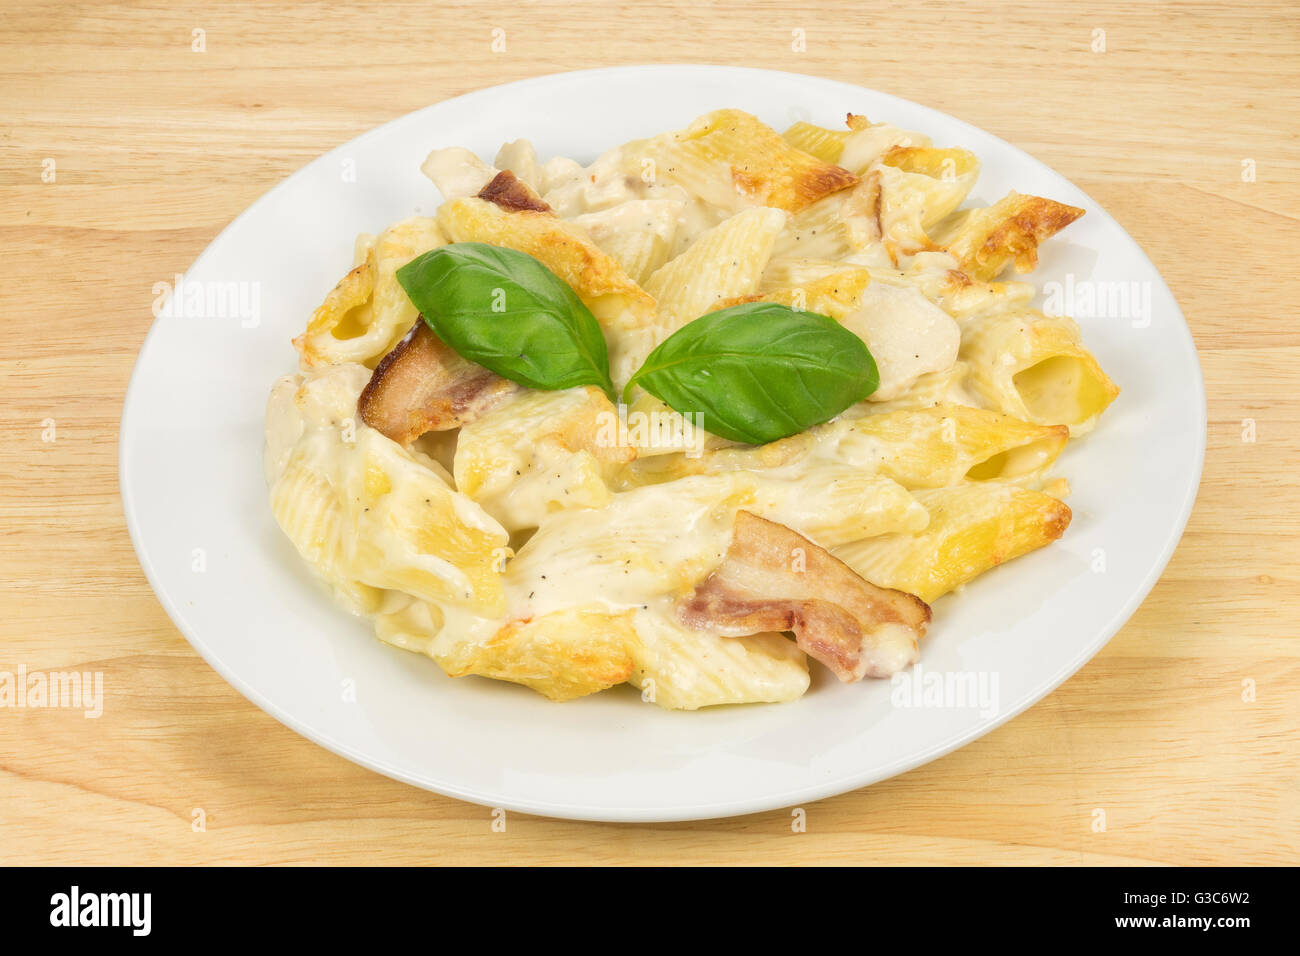 Chicken and bacon pasta bake meal served on a white plate - Stock Image